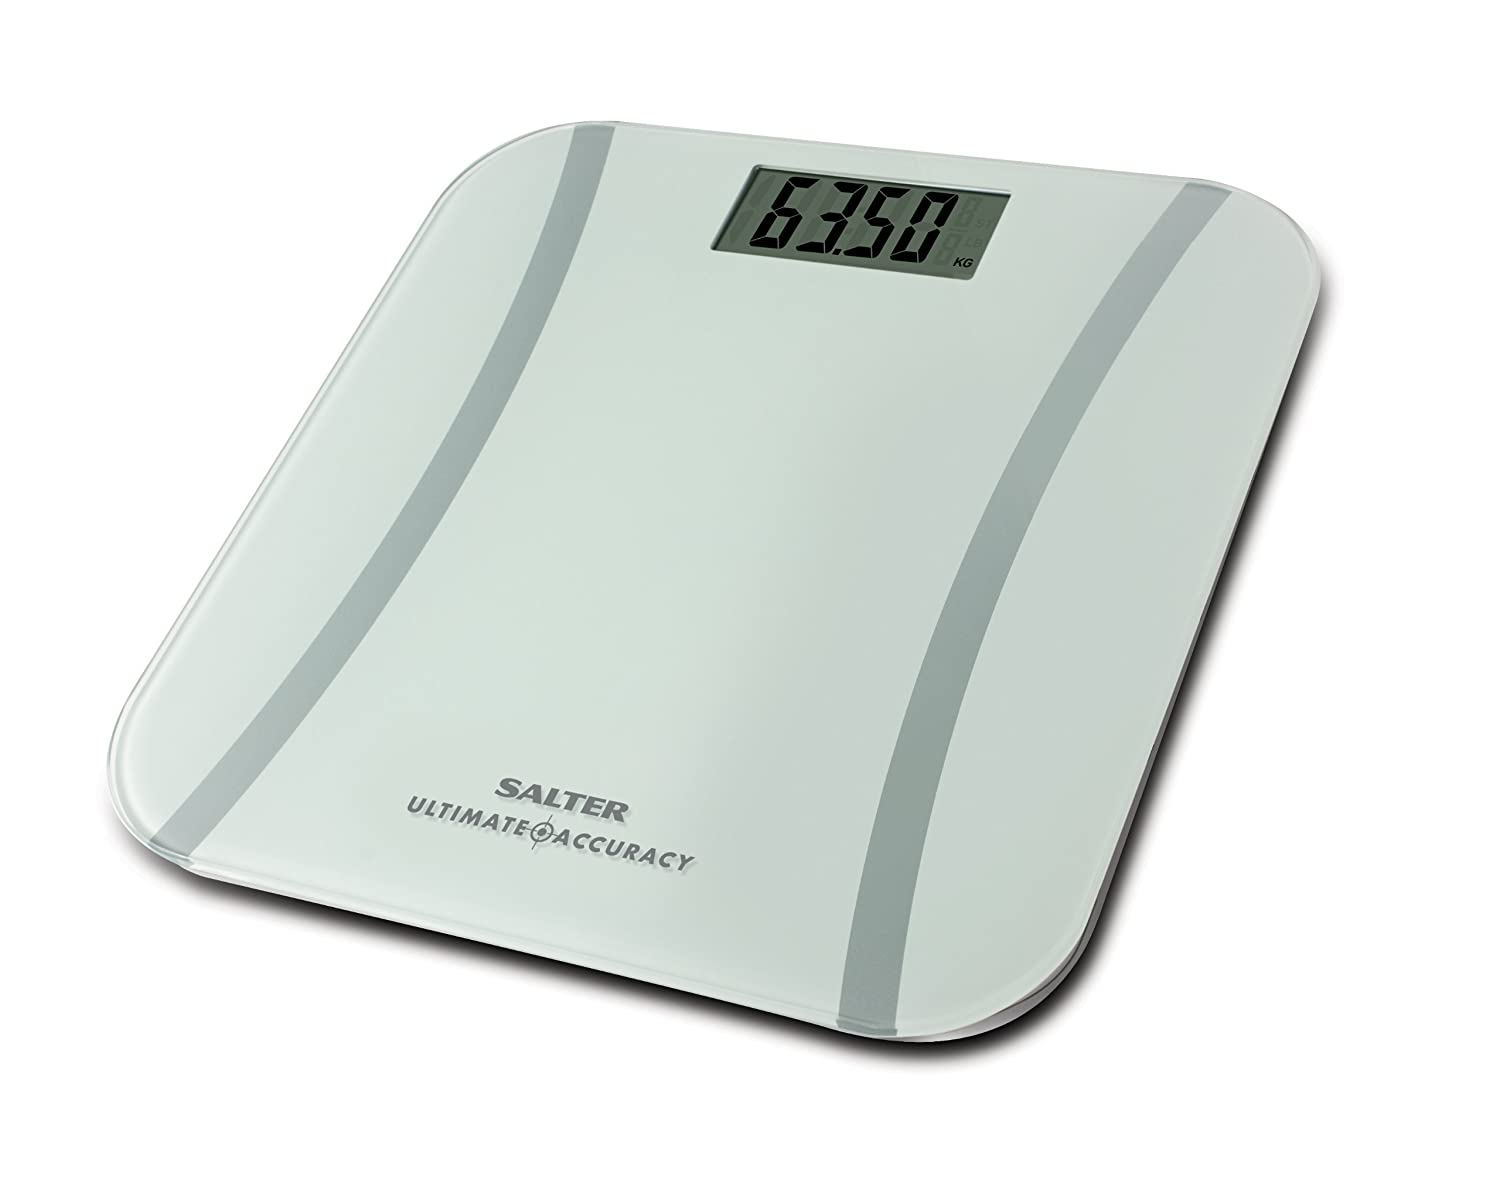 Bathroom scales boots - Salter Ultimate Accuracy Electronic Digital Bathroom Scales Measure 50g Increments Accurate Readings Curve Design Easy To Read Display Weigh Metric